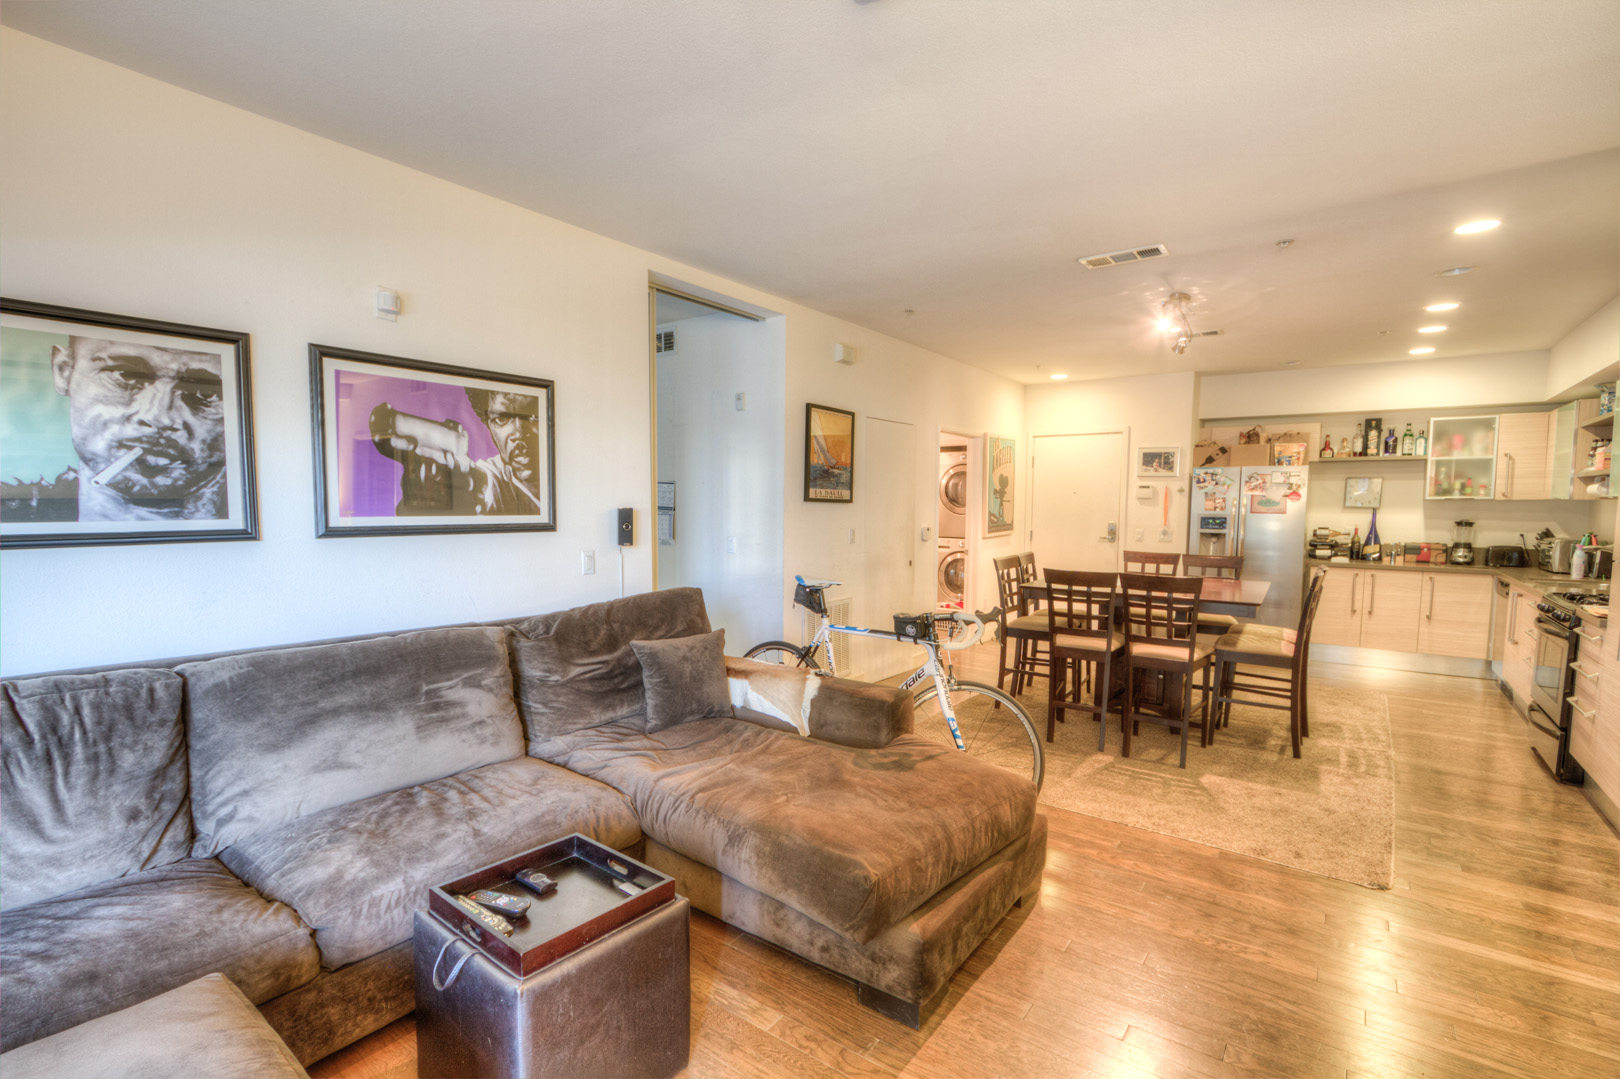 1234 Wilshire Blvd. #205 - Brad Keyes Real Estate